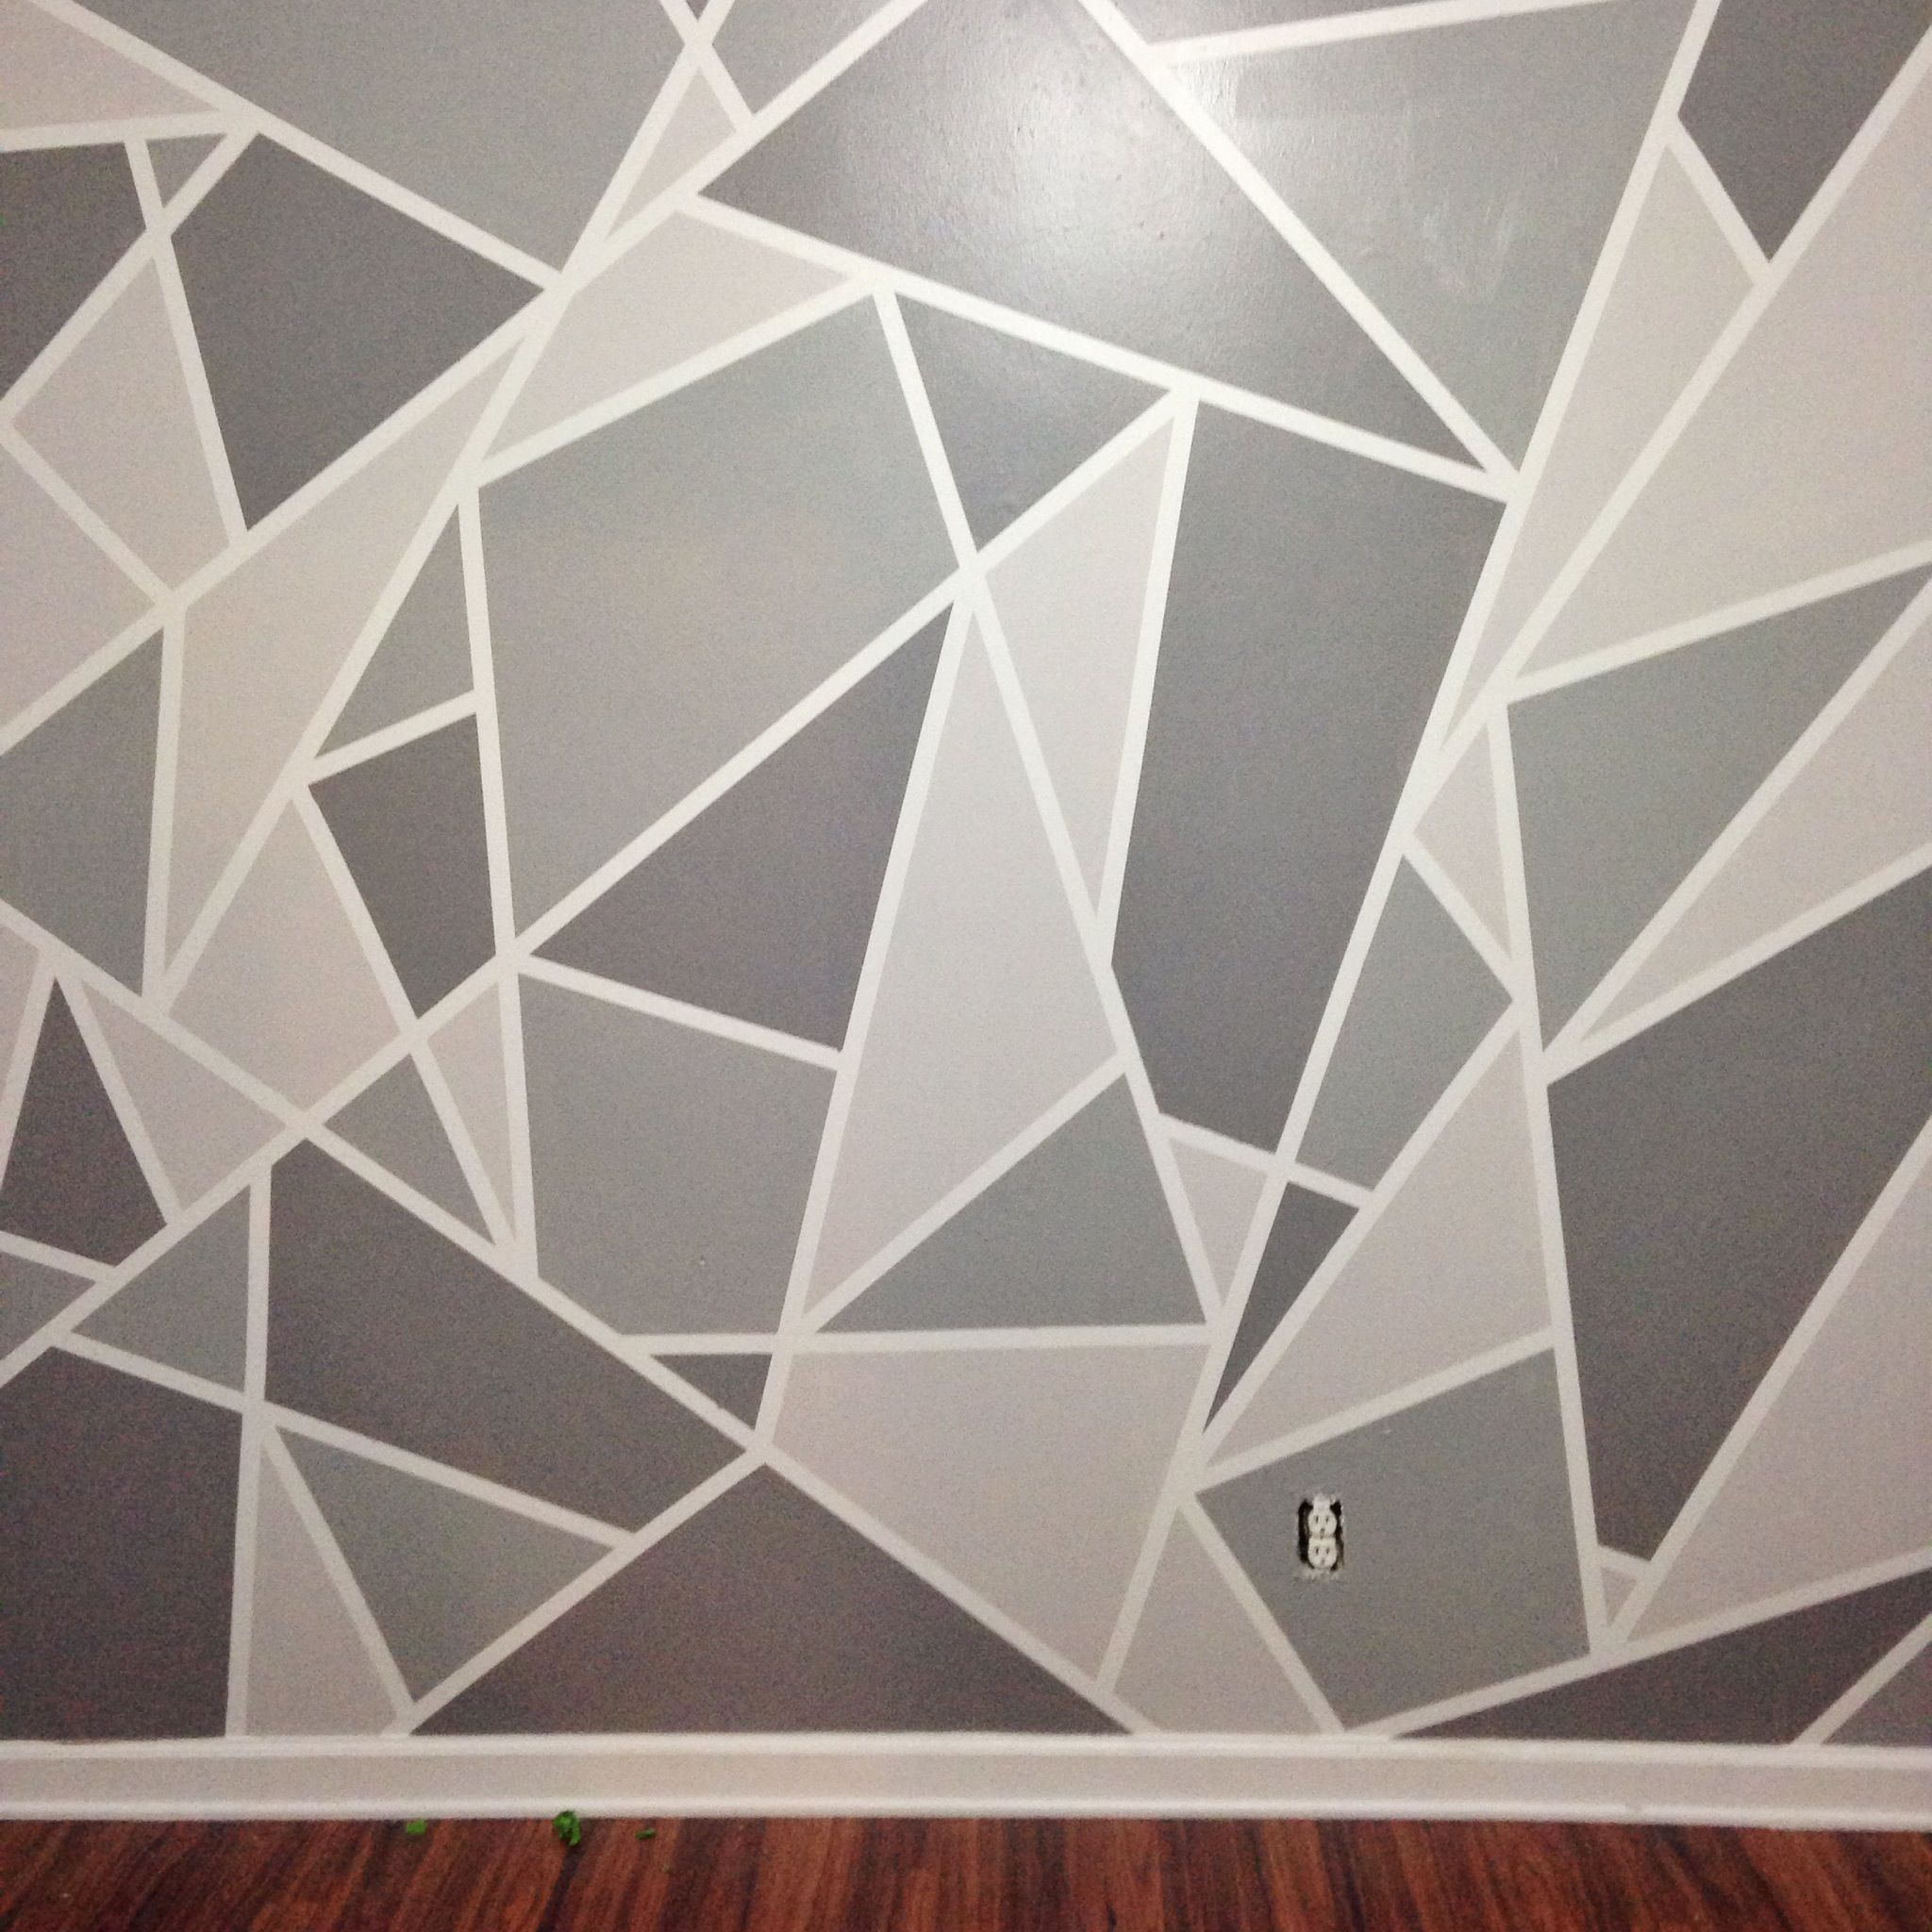 Design Wall Diy Faux Wallpaper Accent Wall Statement Wall Diy